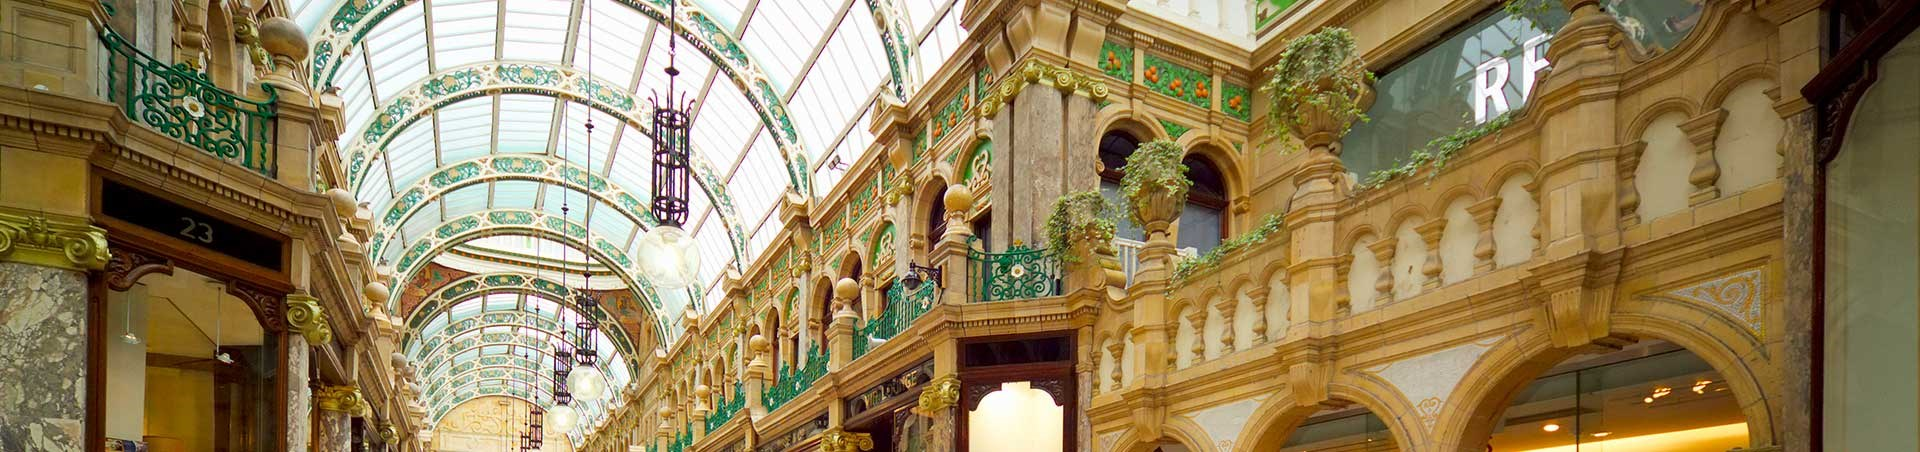 Victoria Quarter Shopping Centre, Leeds